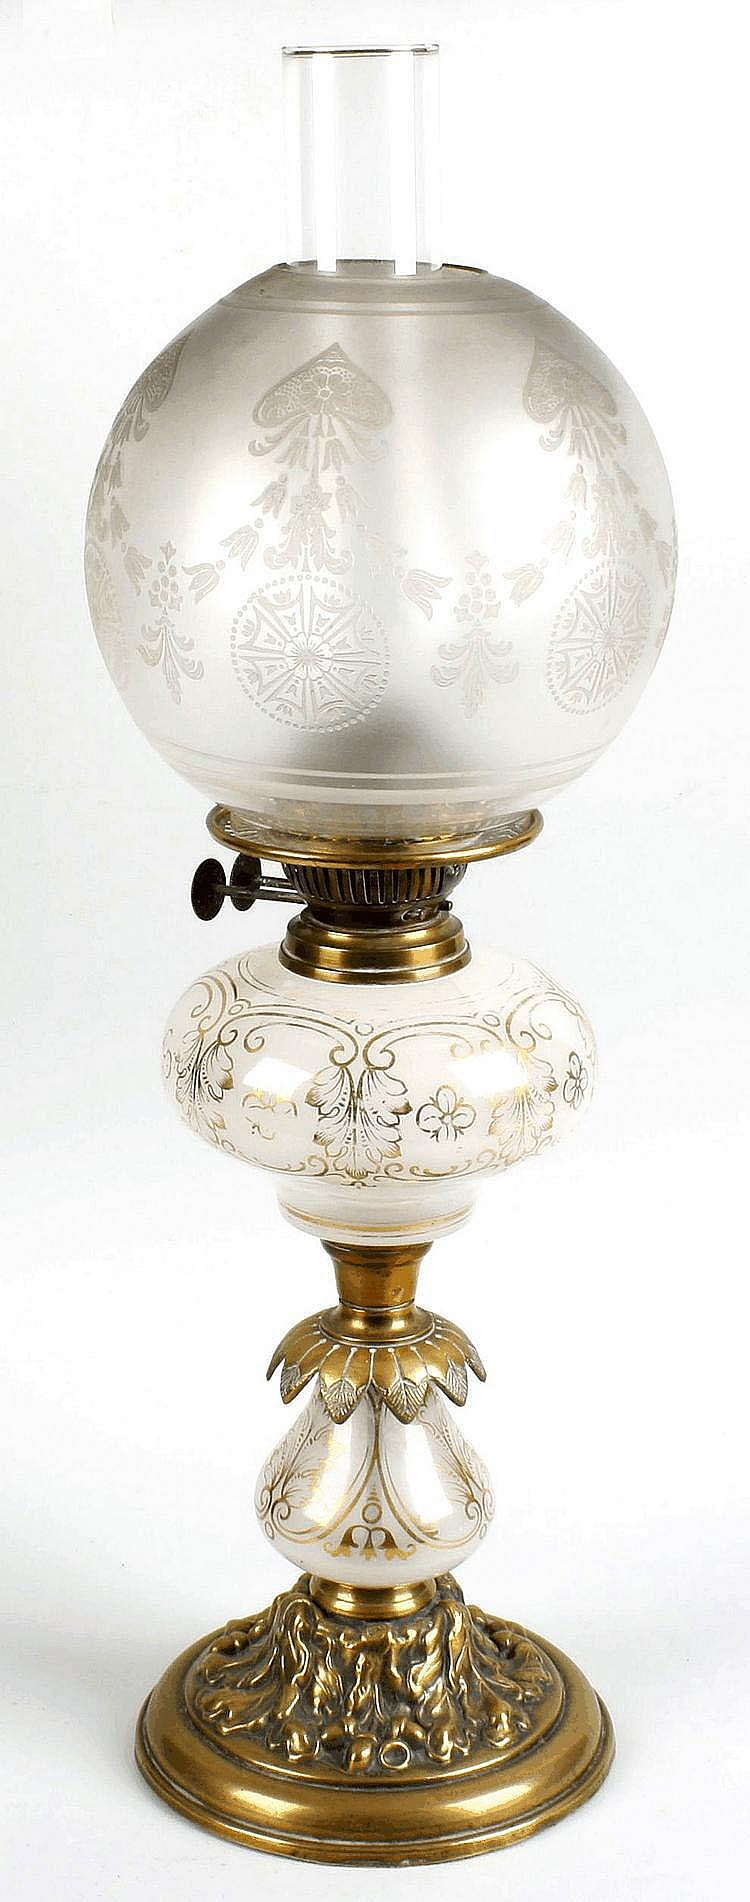 A Victorian paraffin lamp